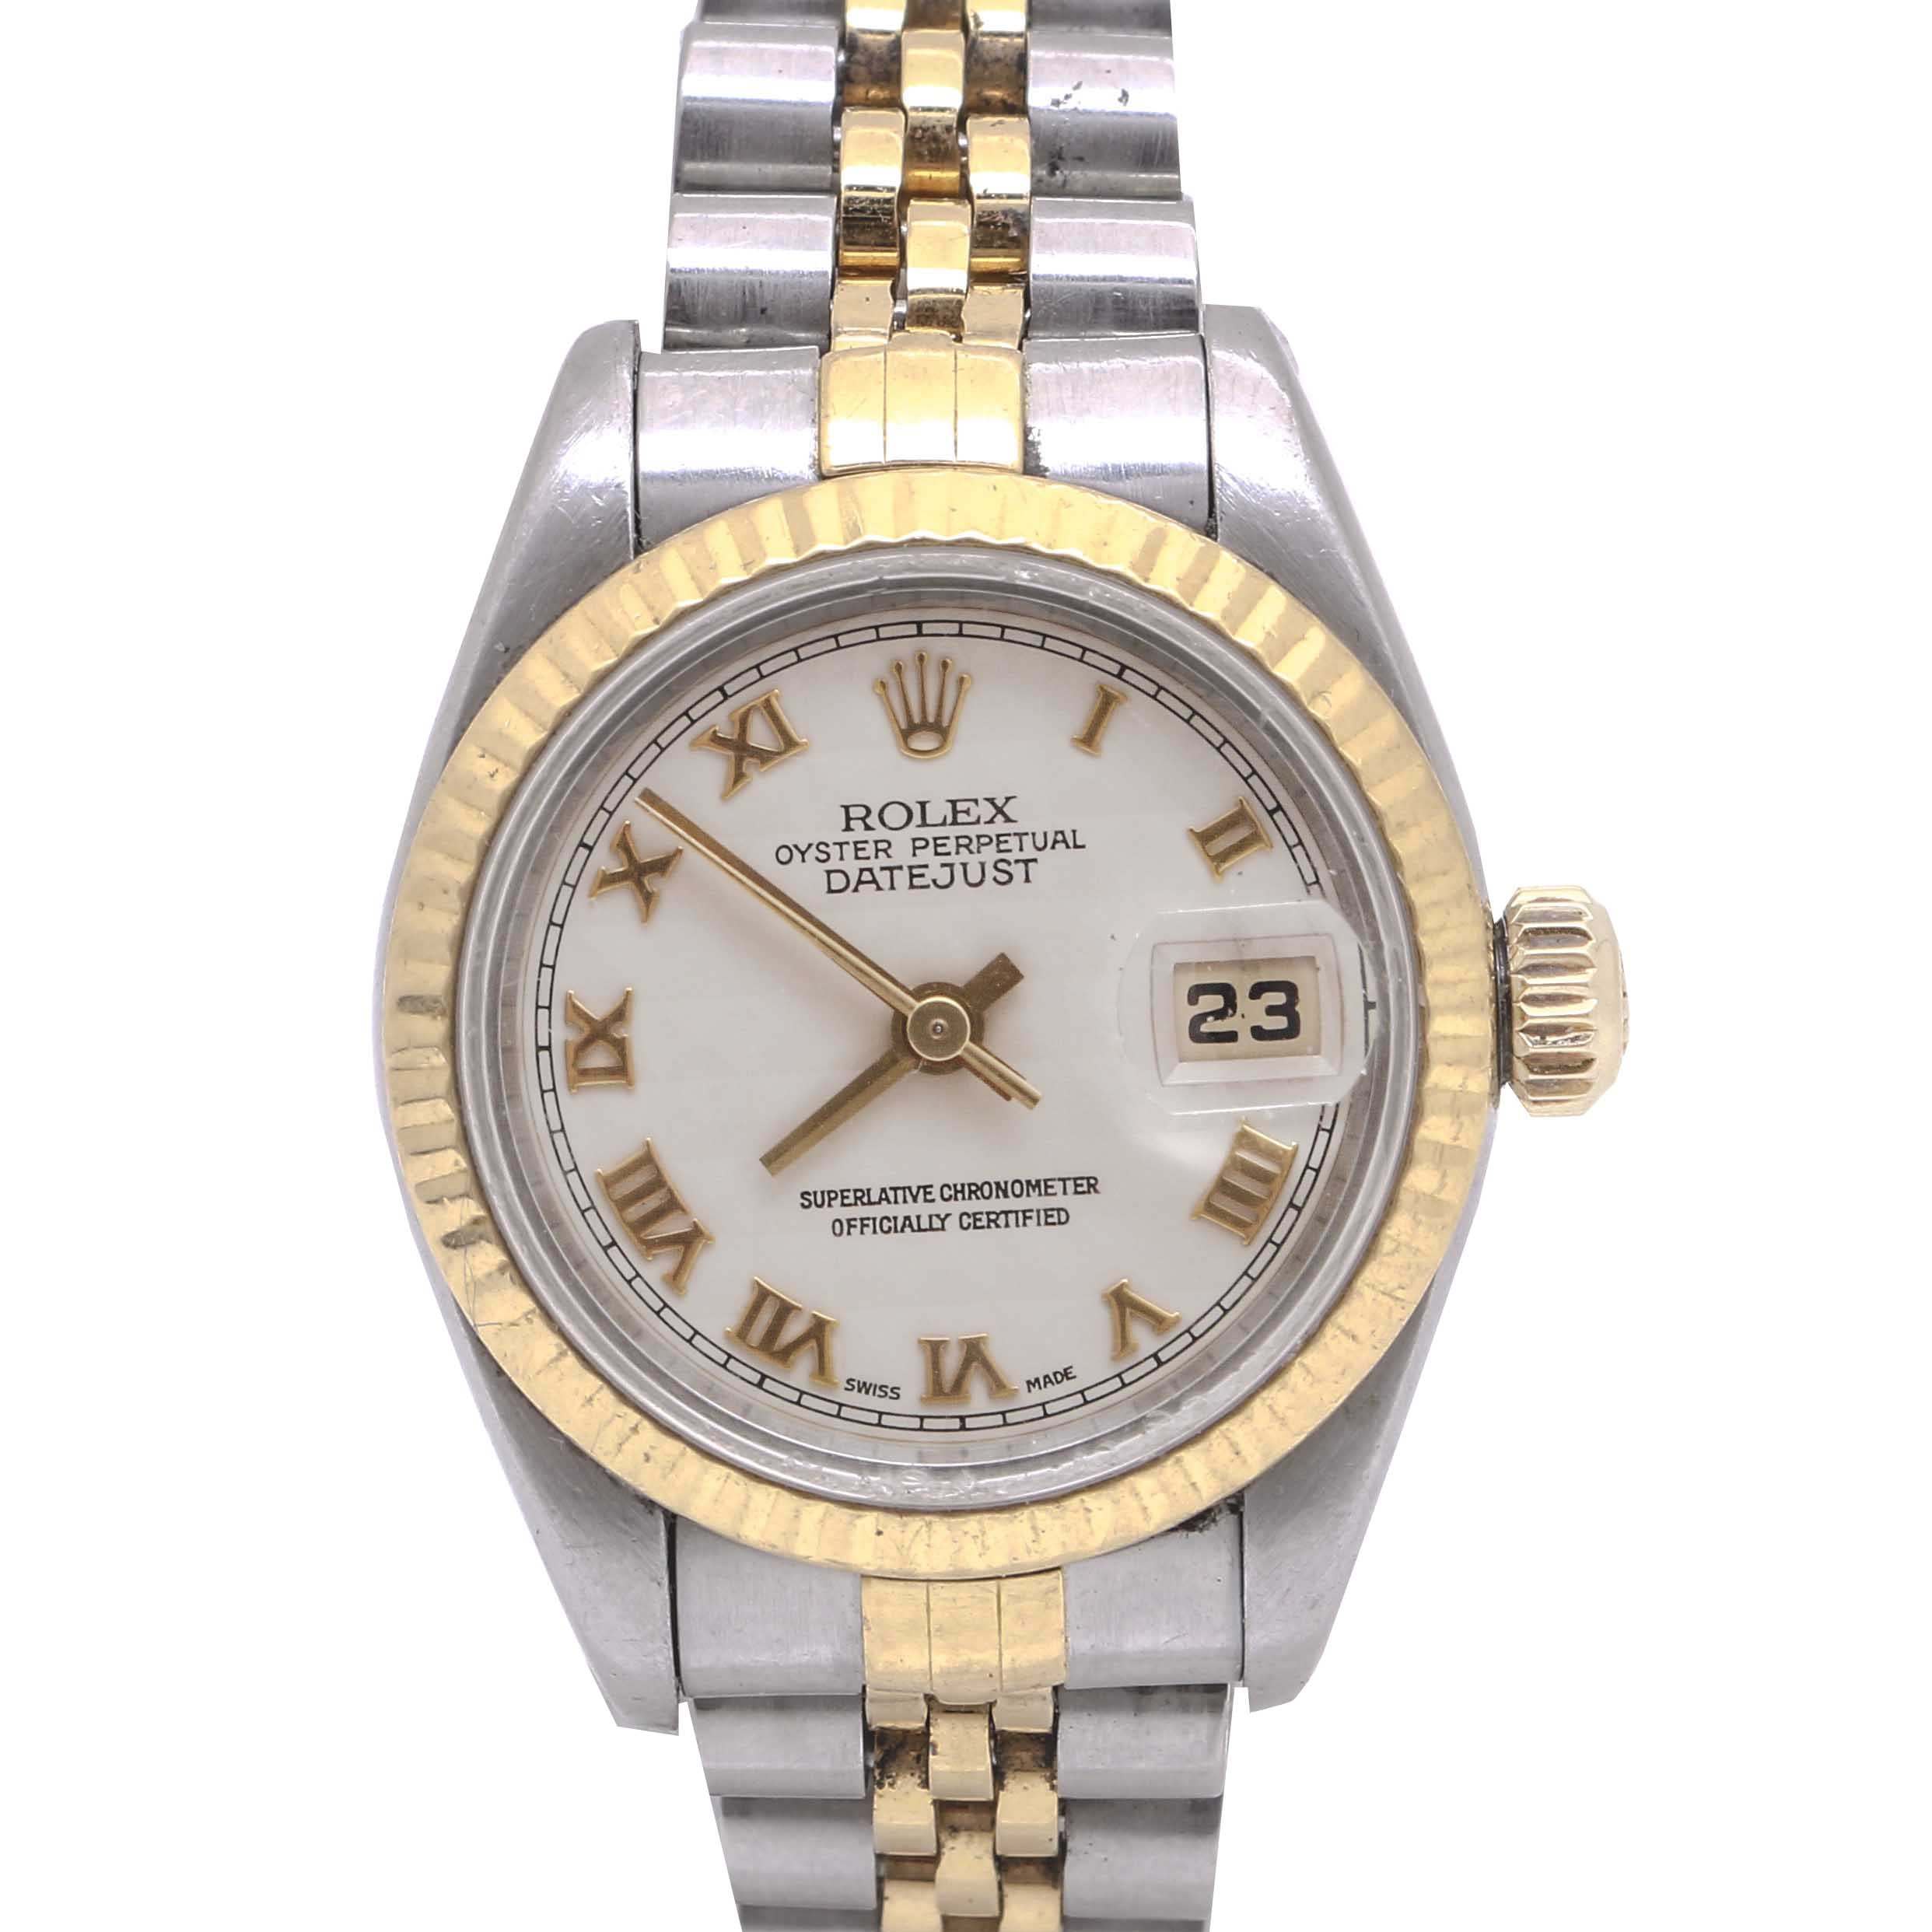 Rolex Oyster Perpetual 18K Gold and Stainless Steel Wristwatch